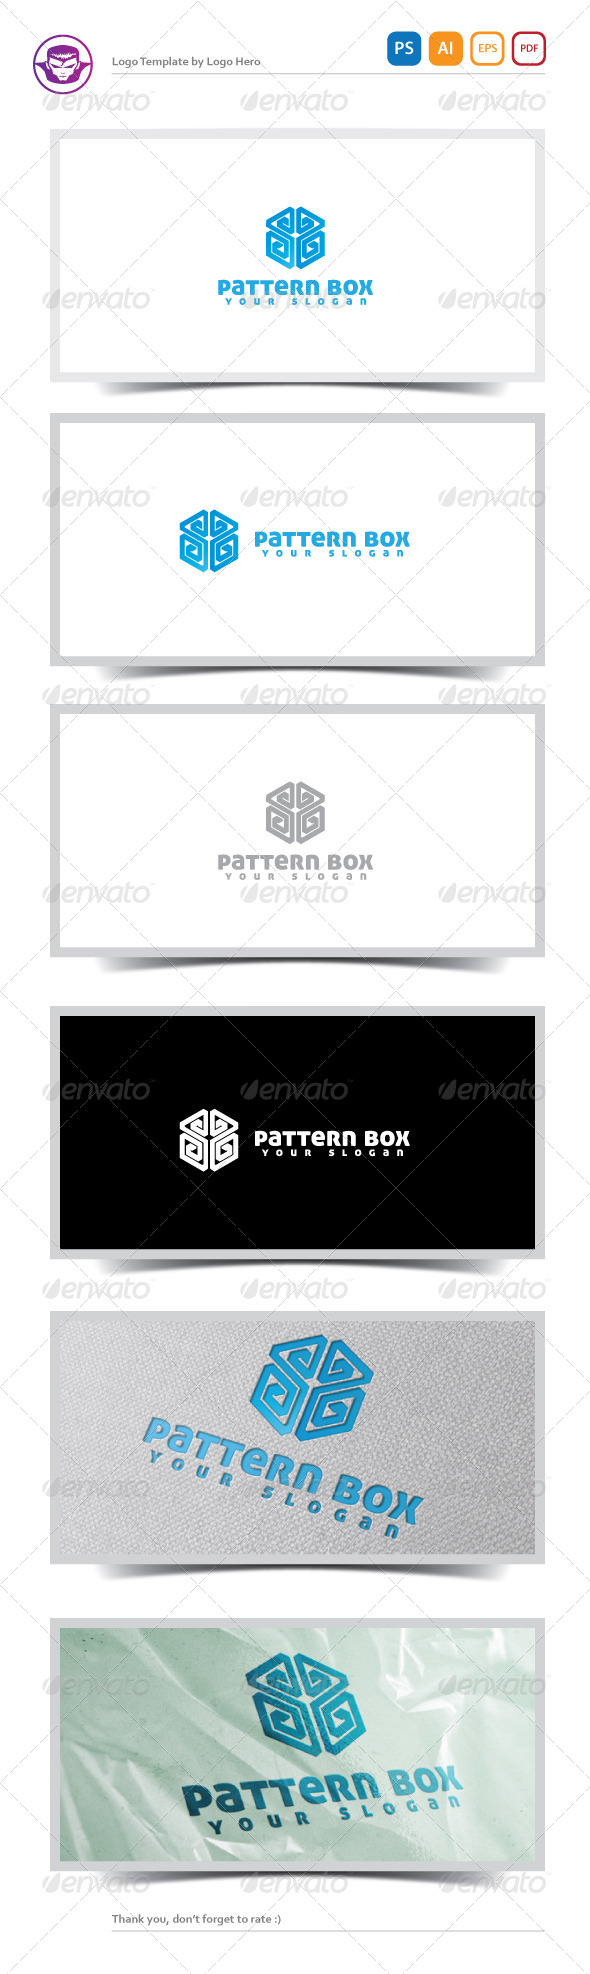 Pattern Box Logo Template